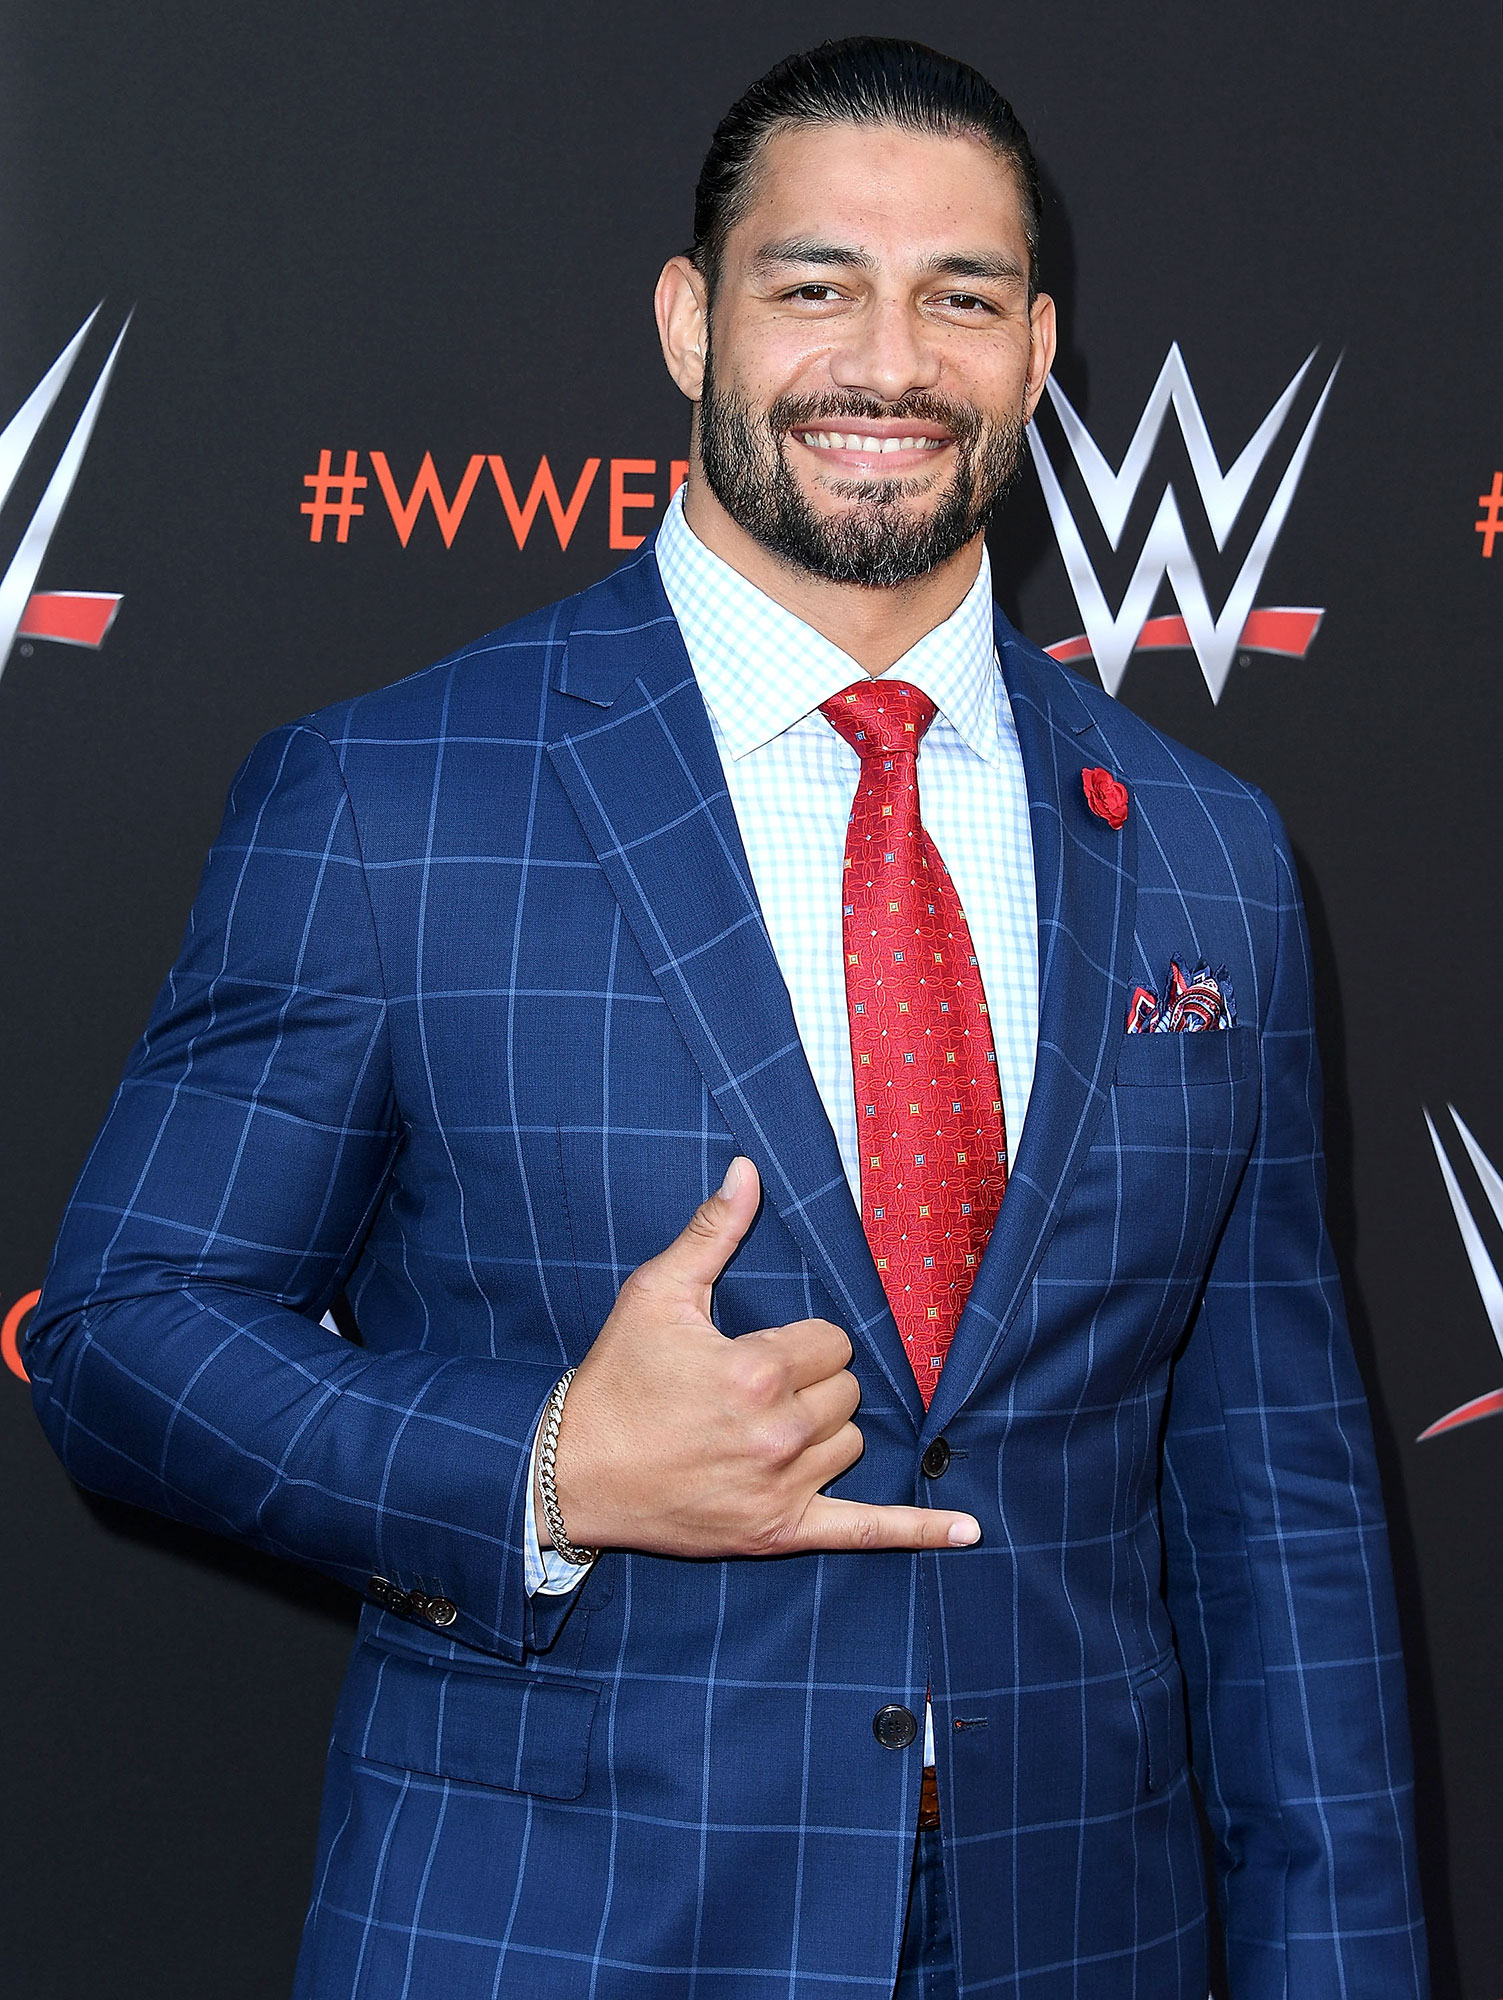 WWE Star Roman Reigns' Cancer Is in Remission